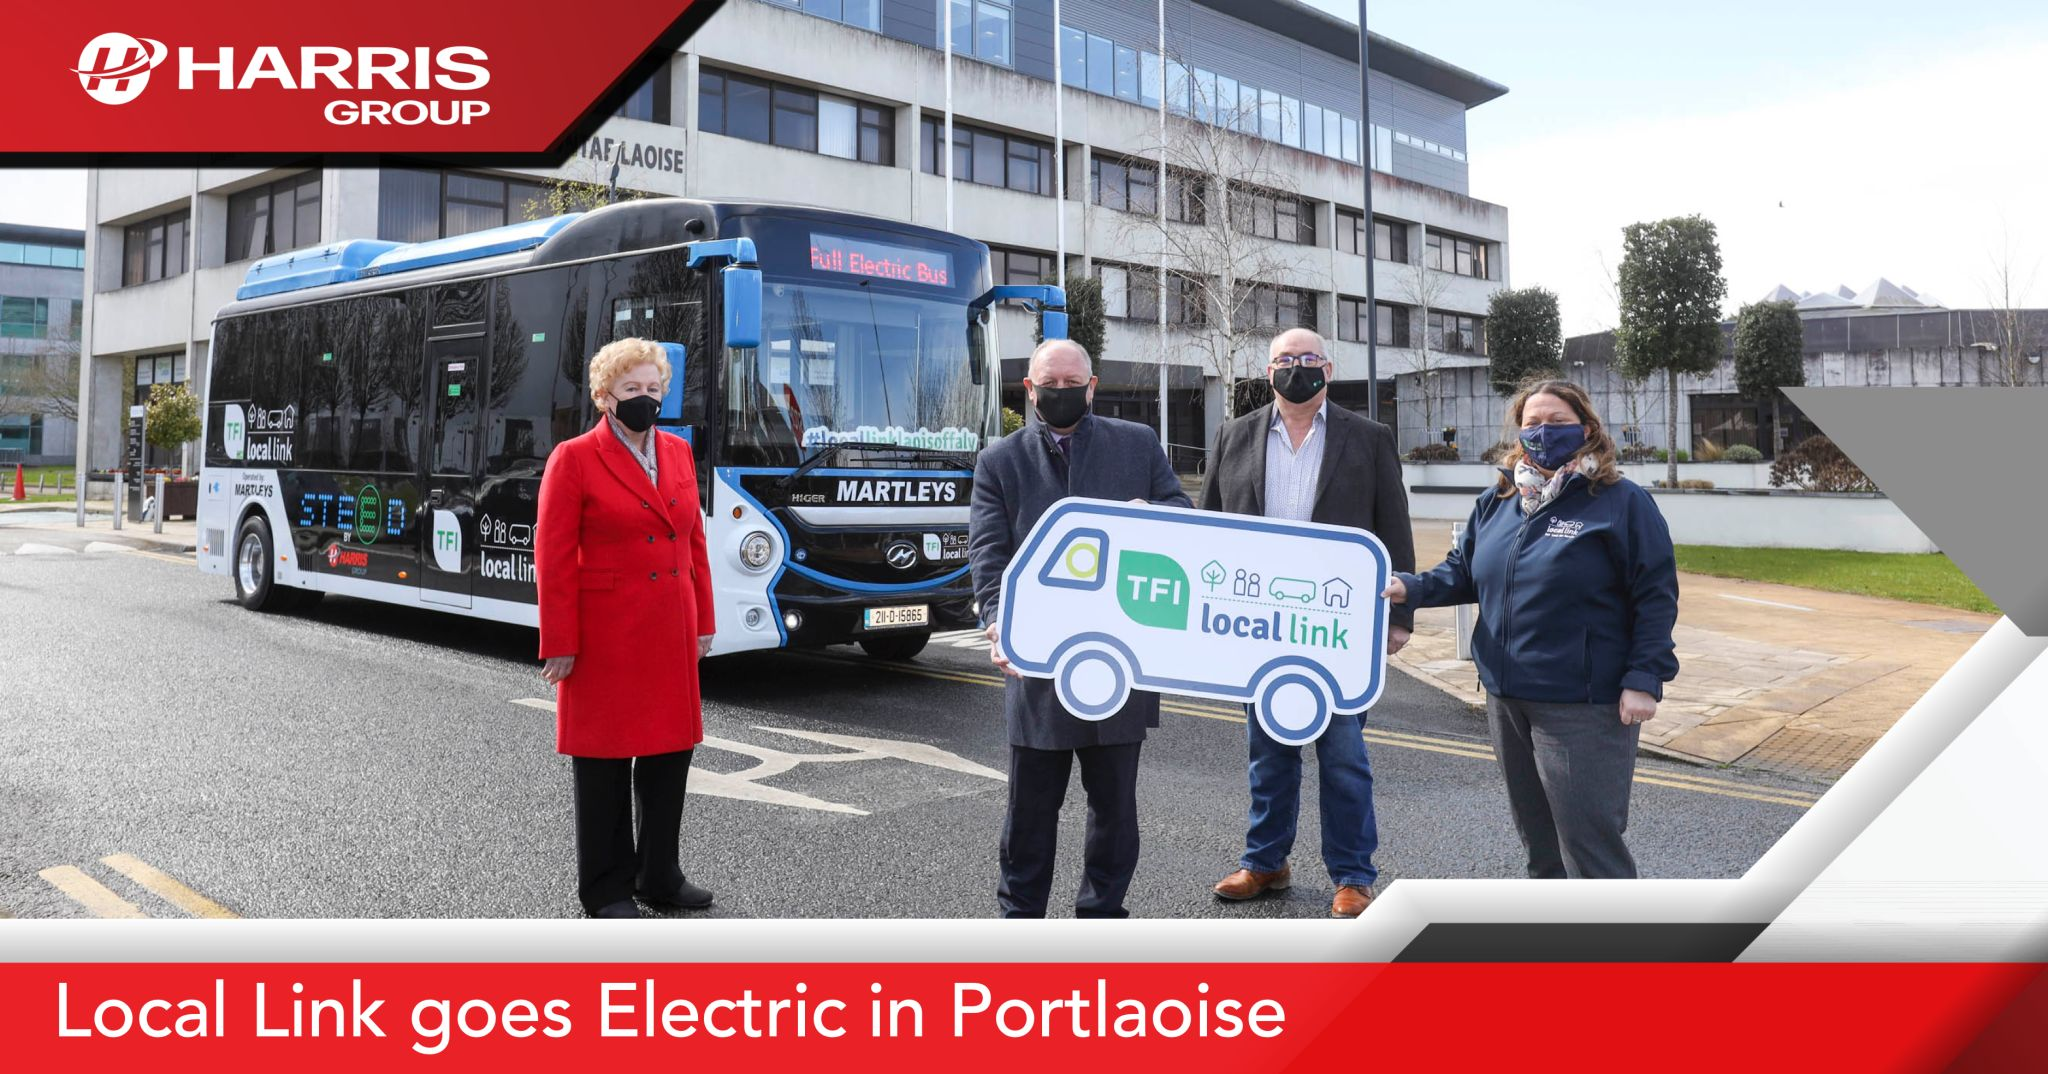 Harris Group supplies Ireland's first electric public transport bus